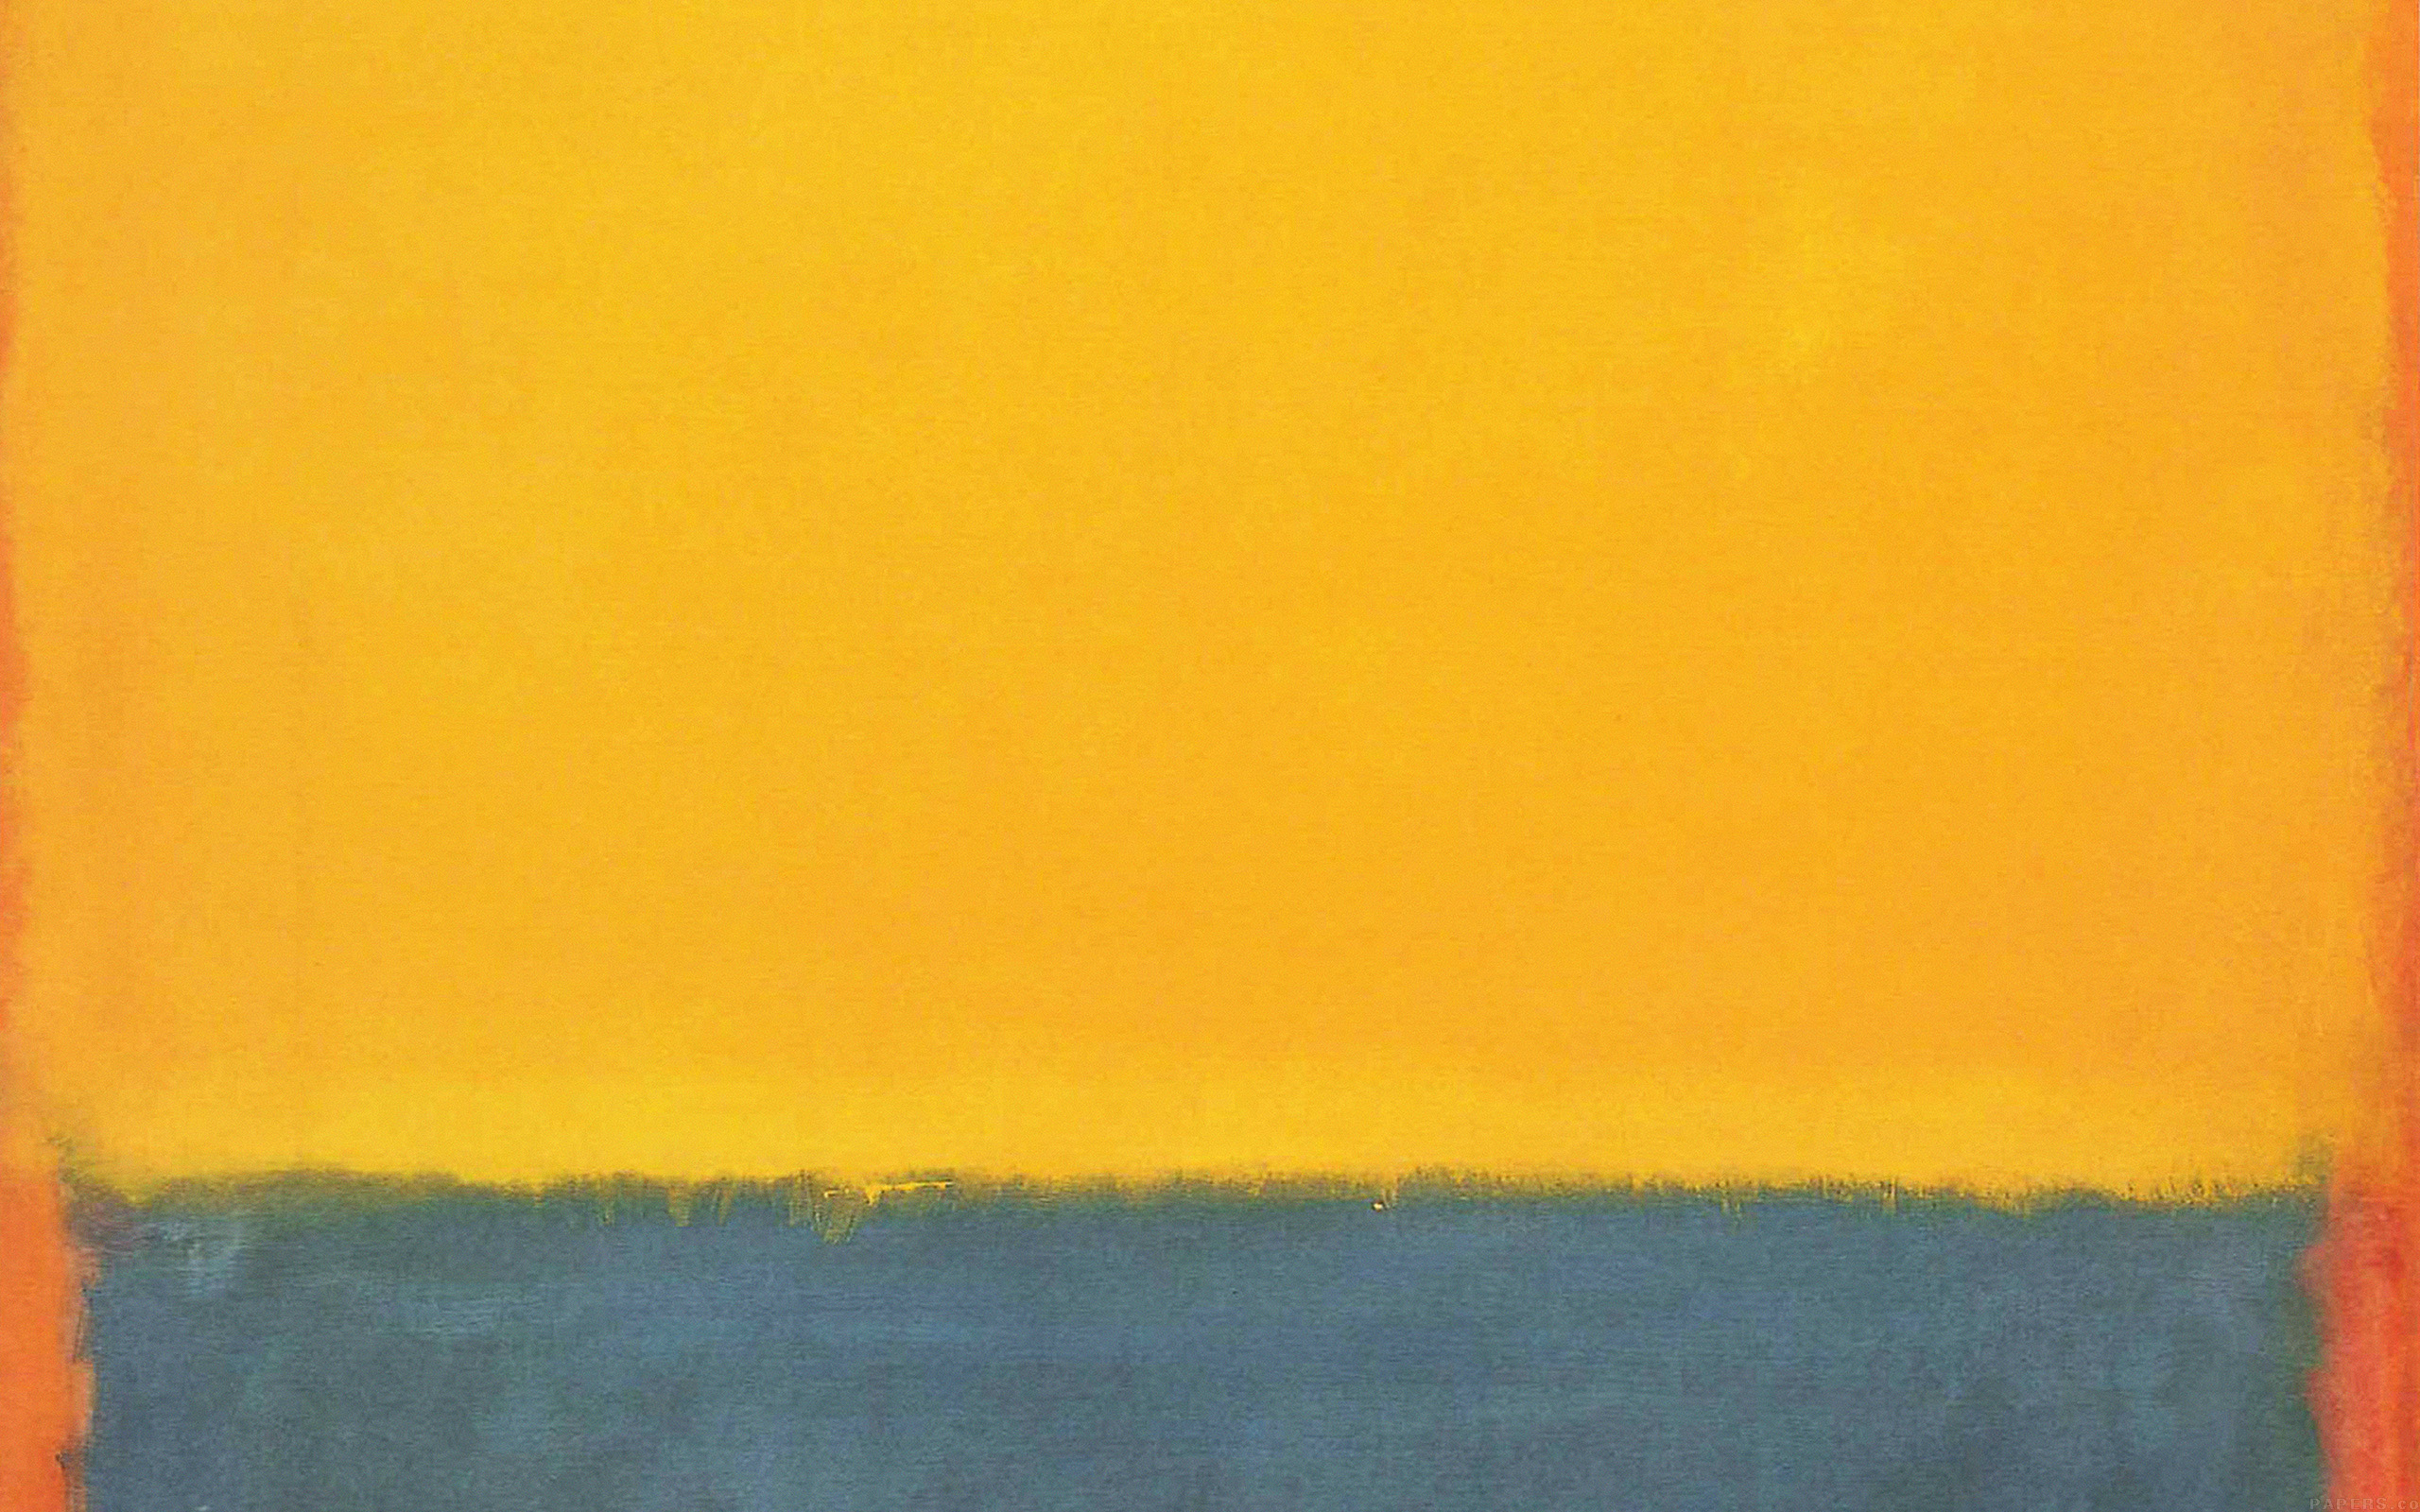 Iphone Cloud Wallpaper Al62 Classic Mark Rothko Style Paint Art Yellow Papers Co